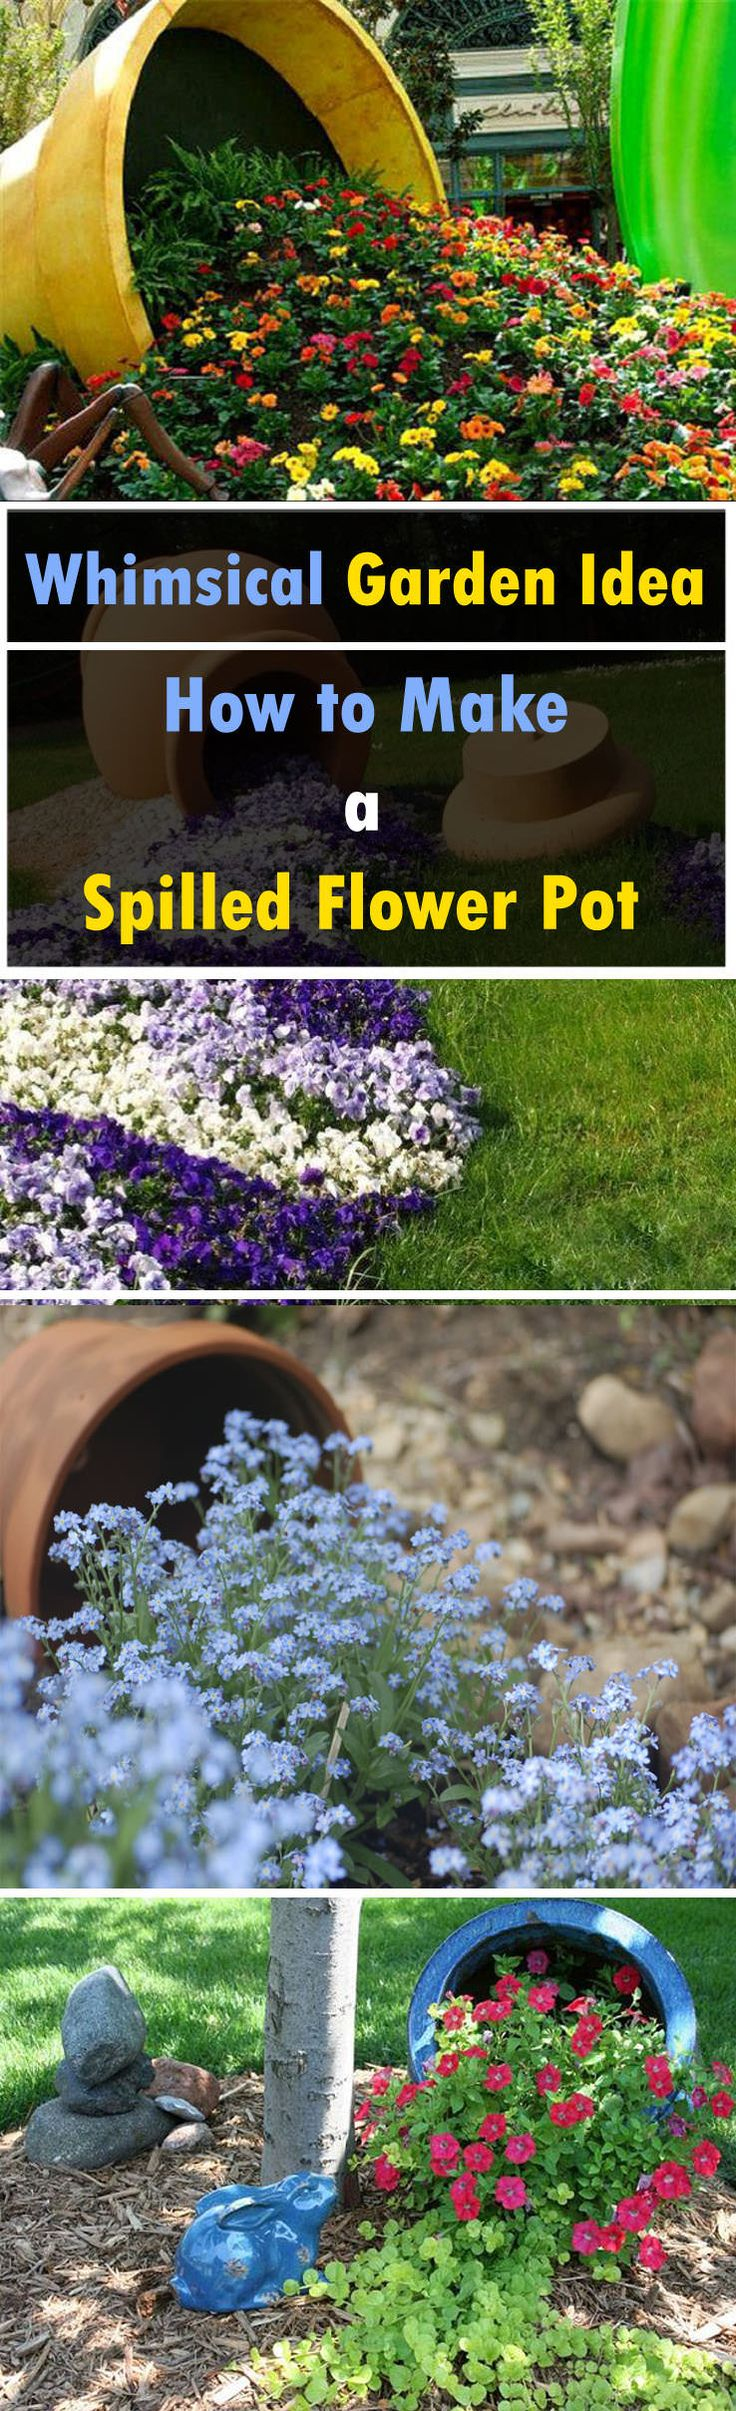 Flower garden design ideas - How To Make A Spilled Flower Pot Garden Design Ideasgarden